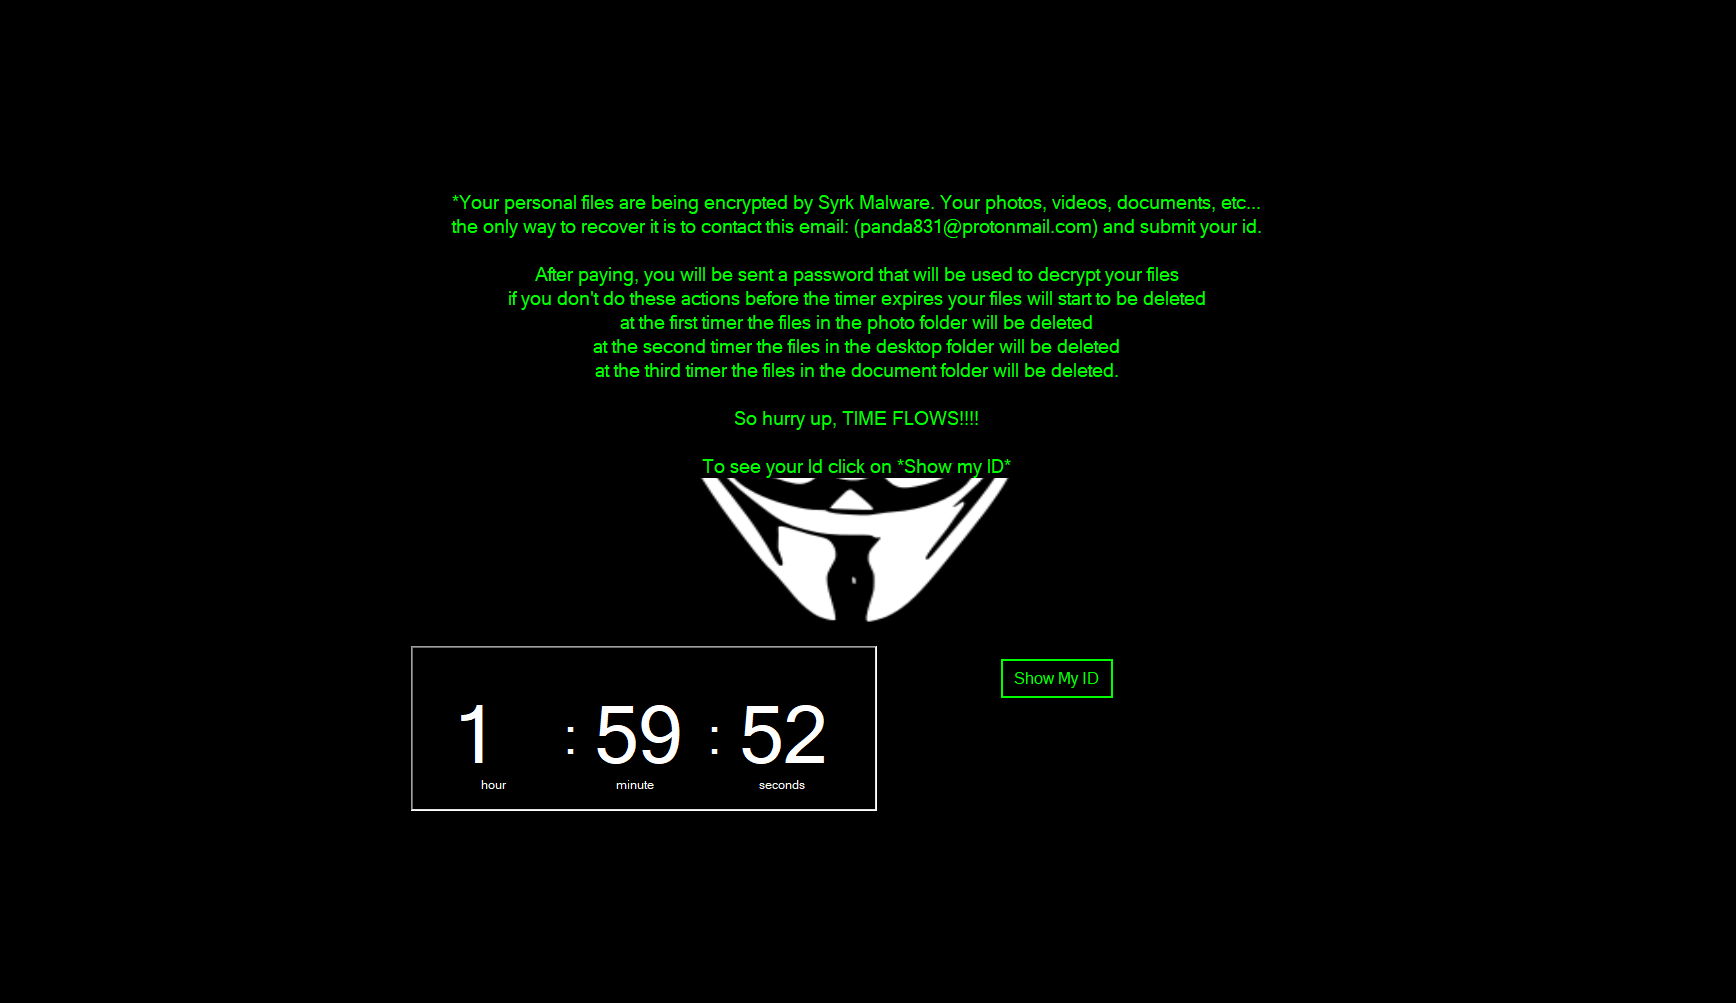 Emsisoft releases a free decryptor for the Syrk ransomware